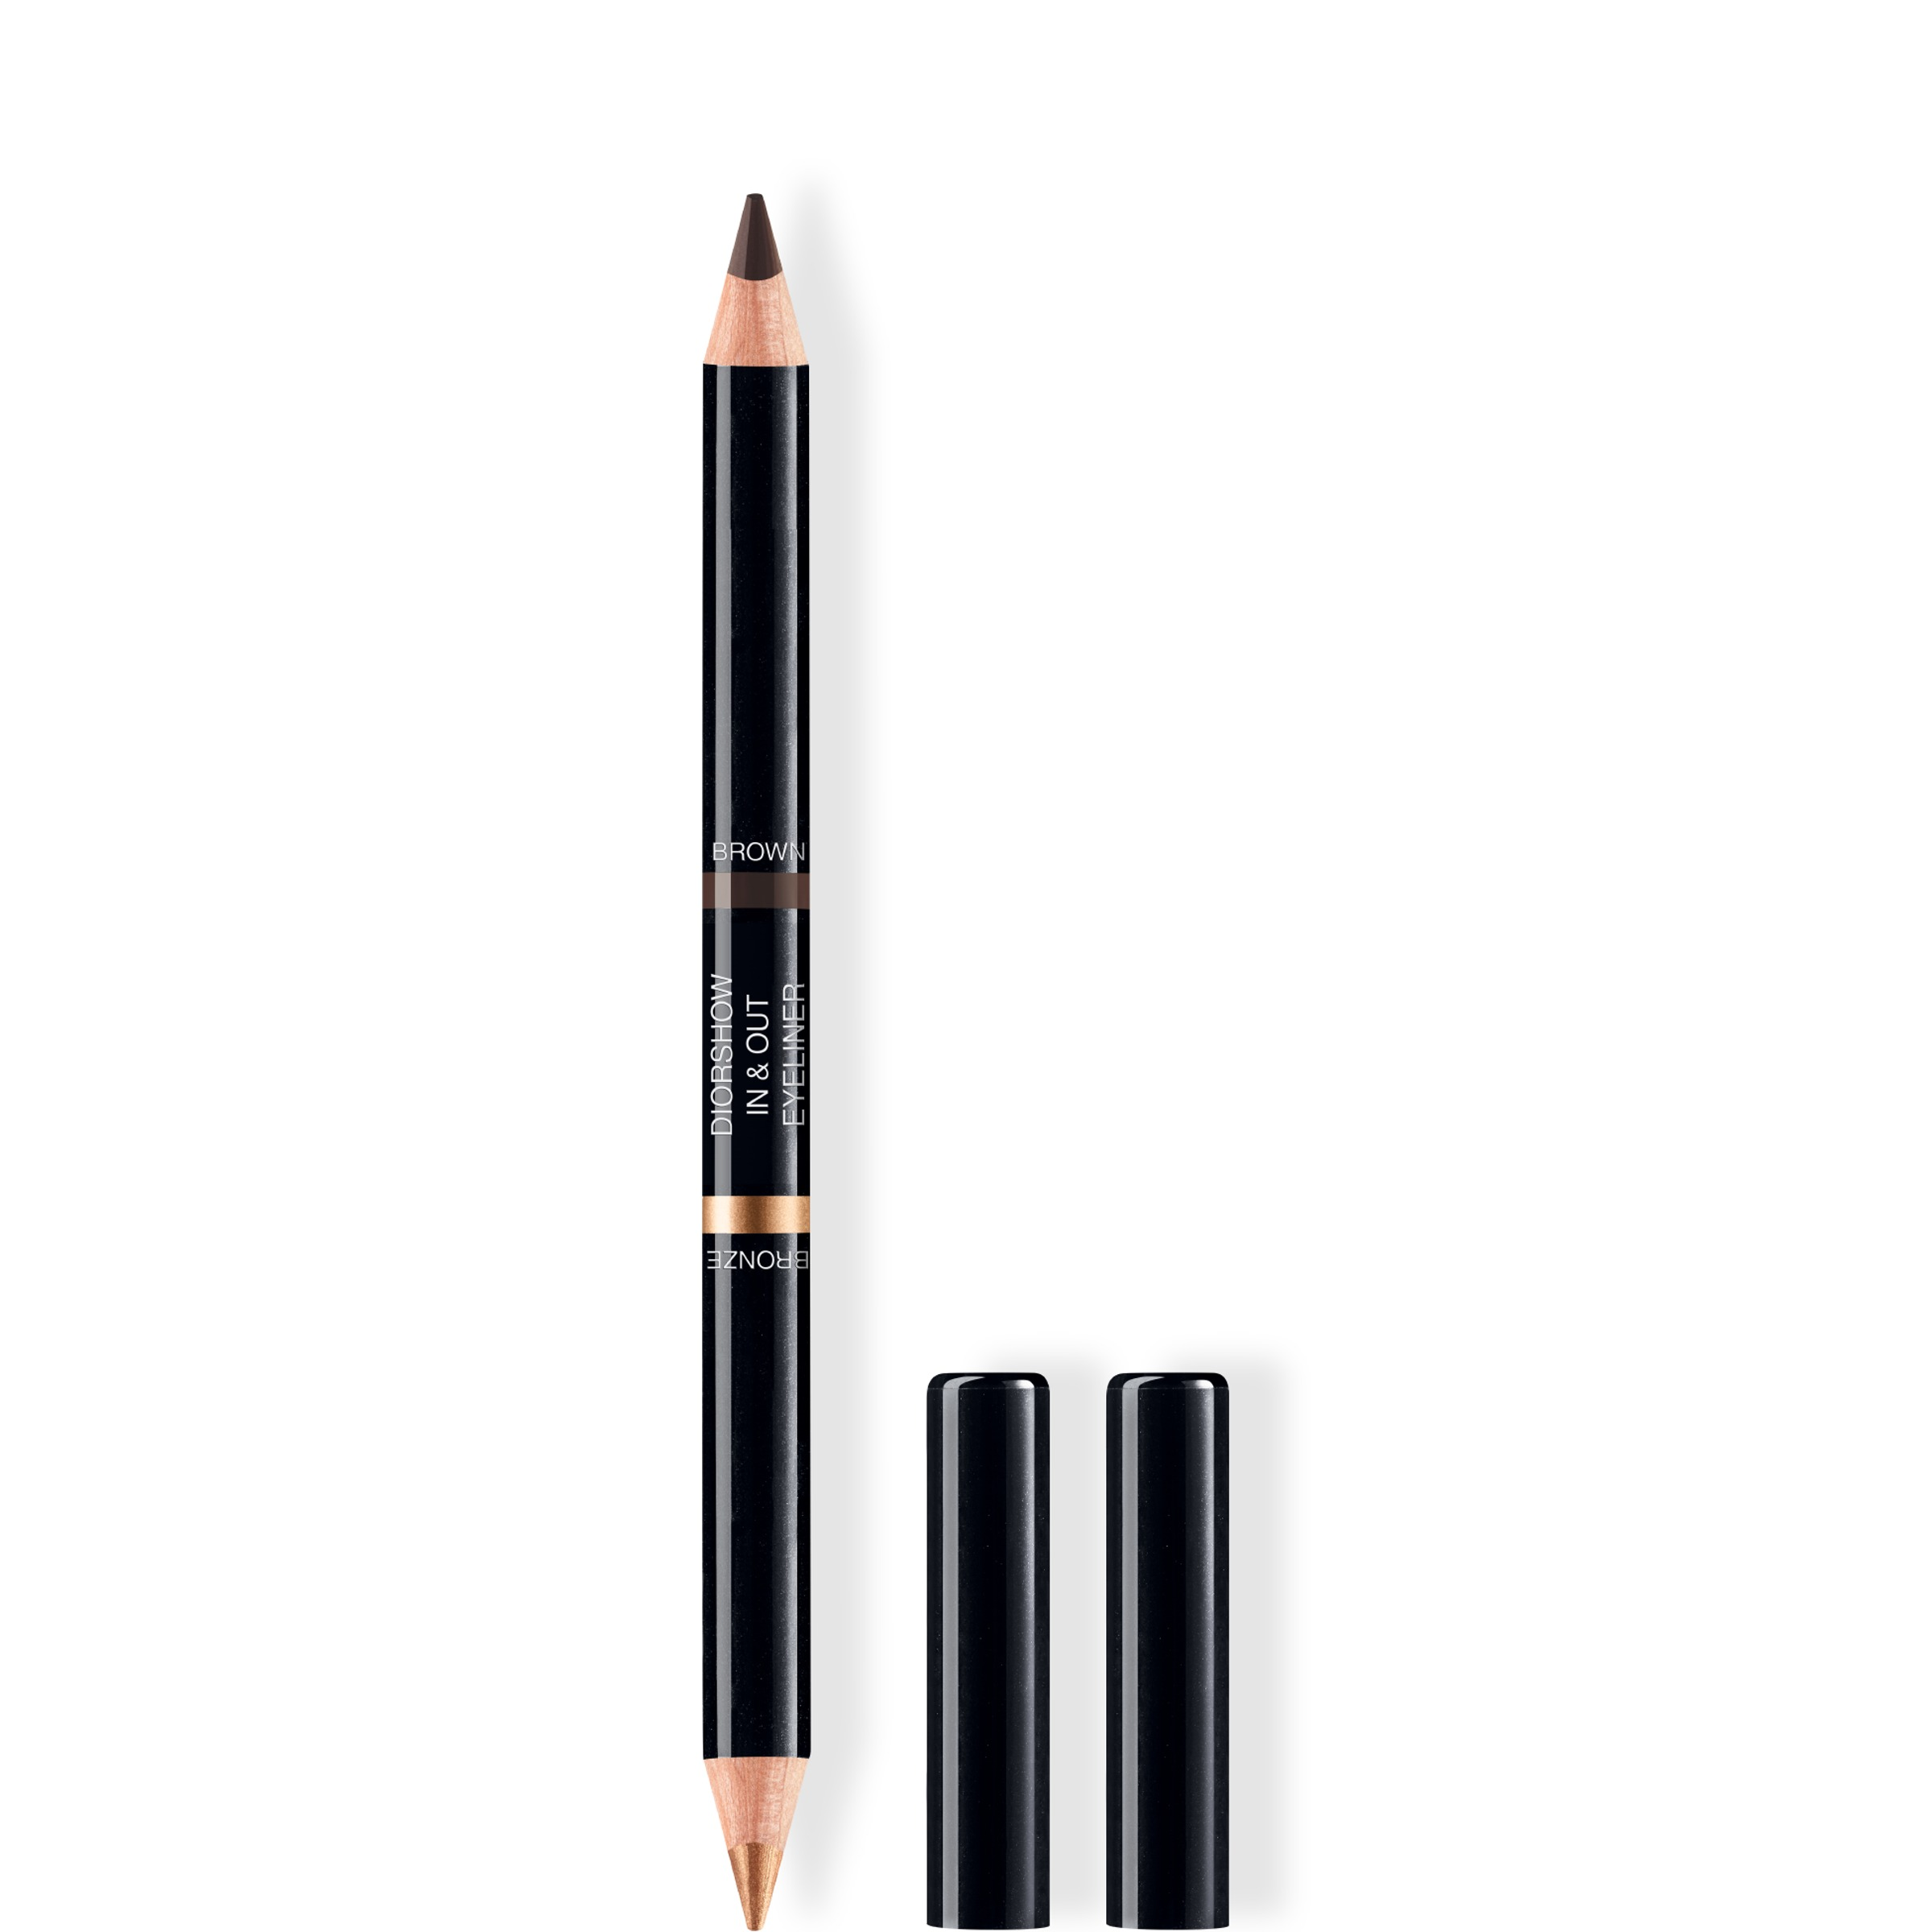 Diorshow In/Out Eyeliner Limited Edition 002 Bronze/Brown